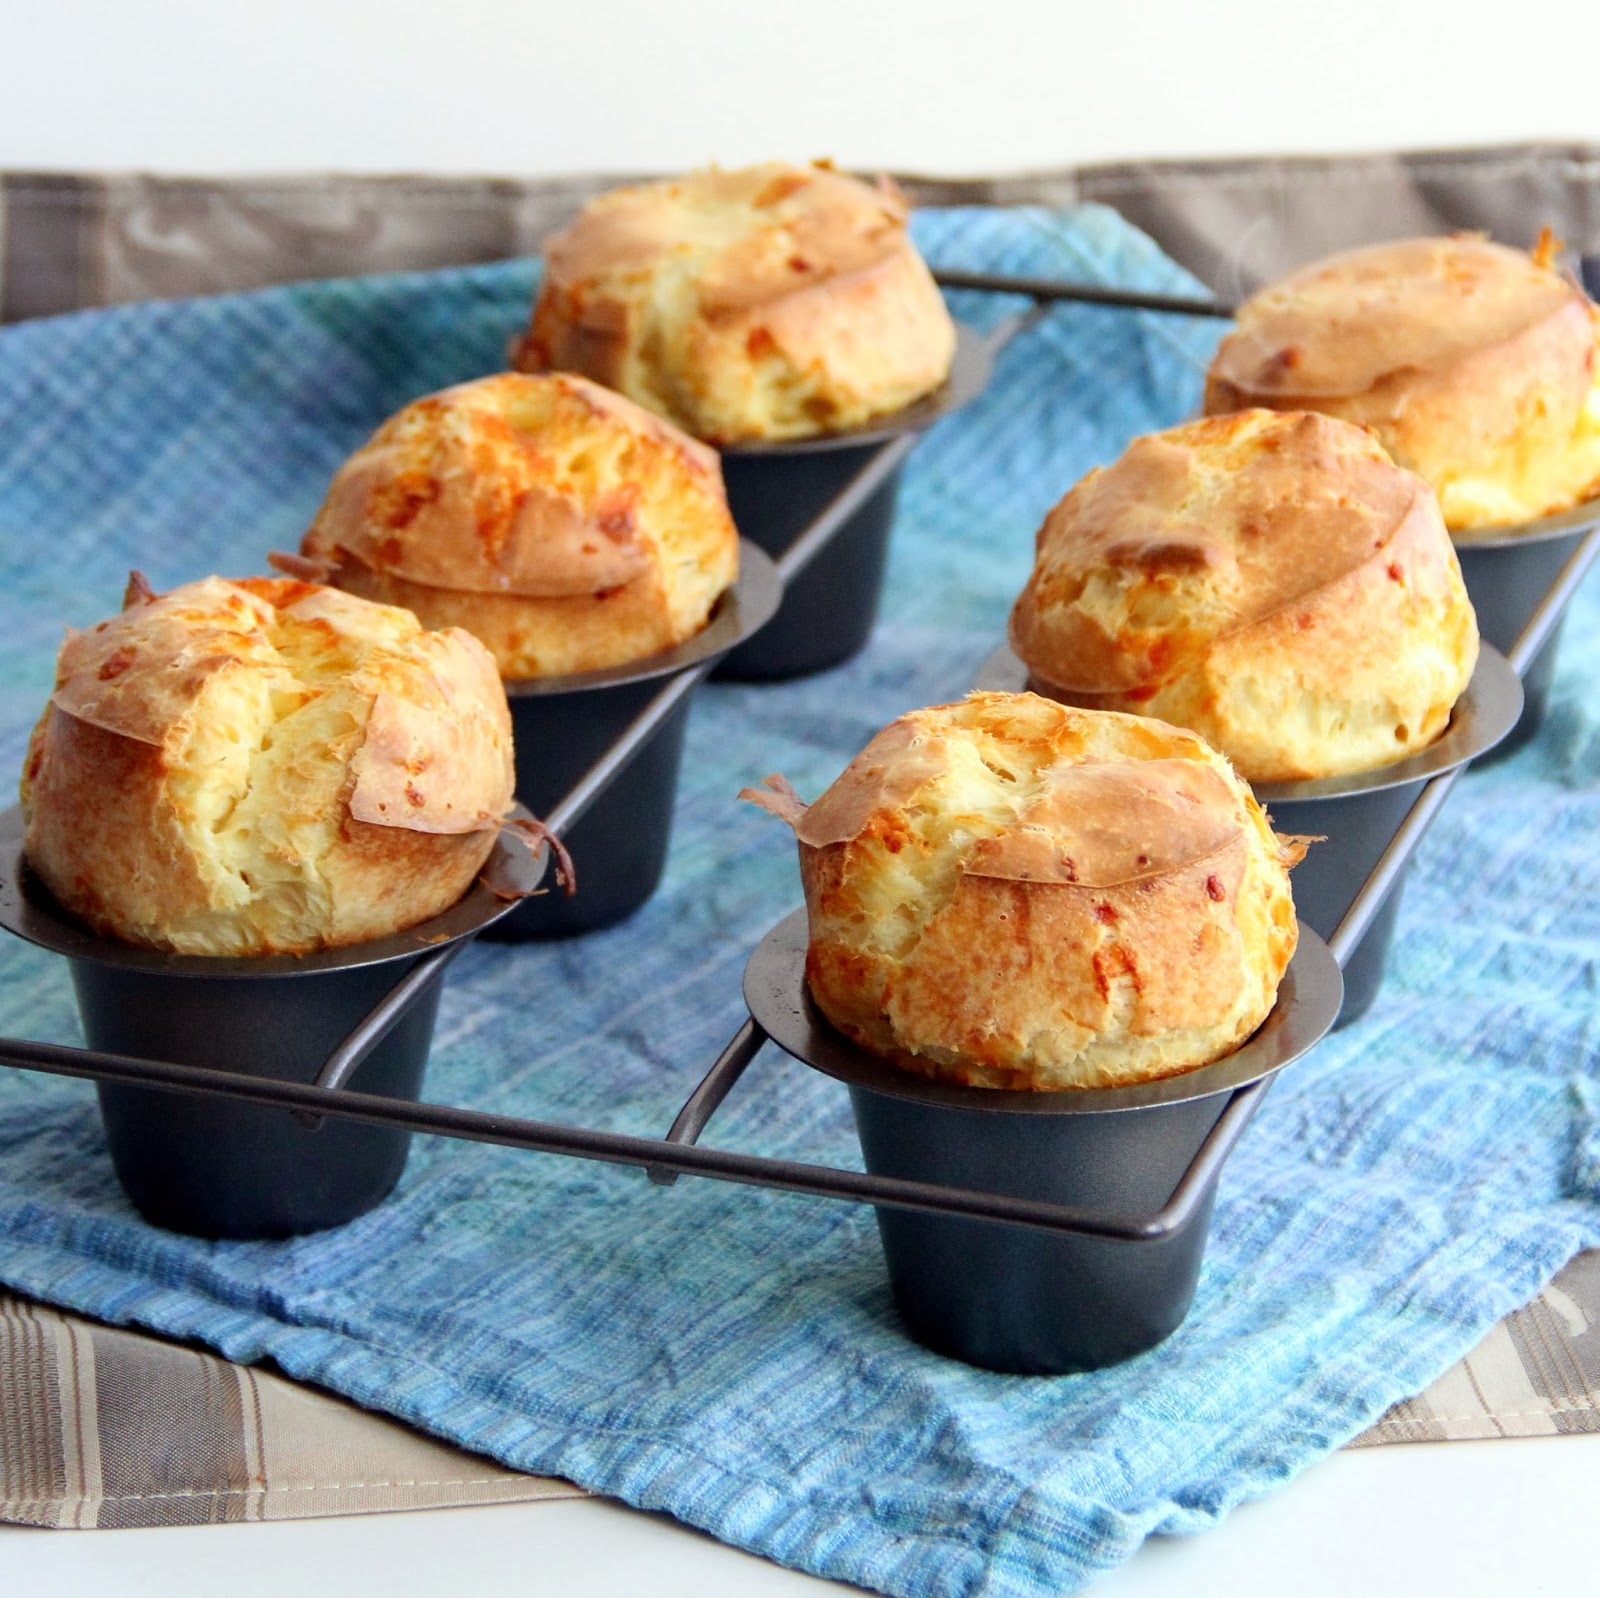 The Growing Foodie: Stand Out Sides: Gruyere Popovers